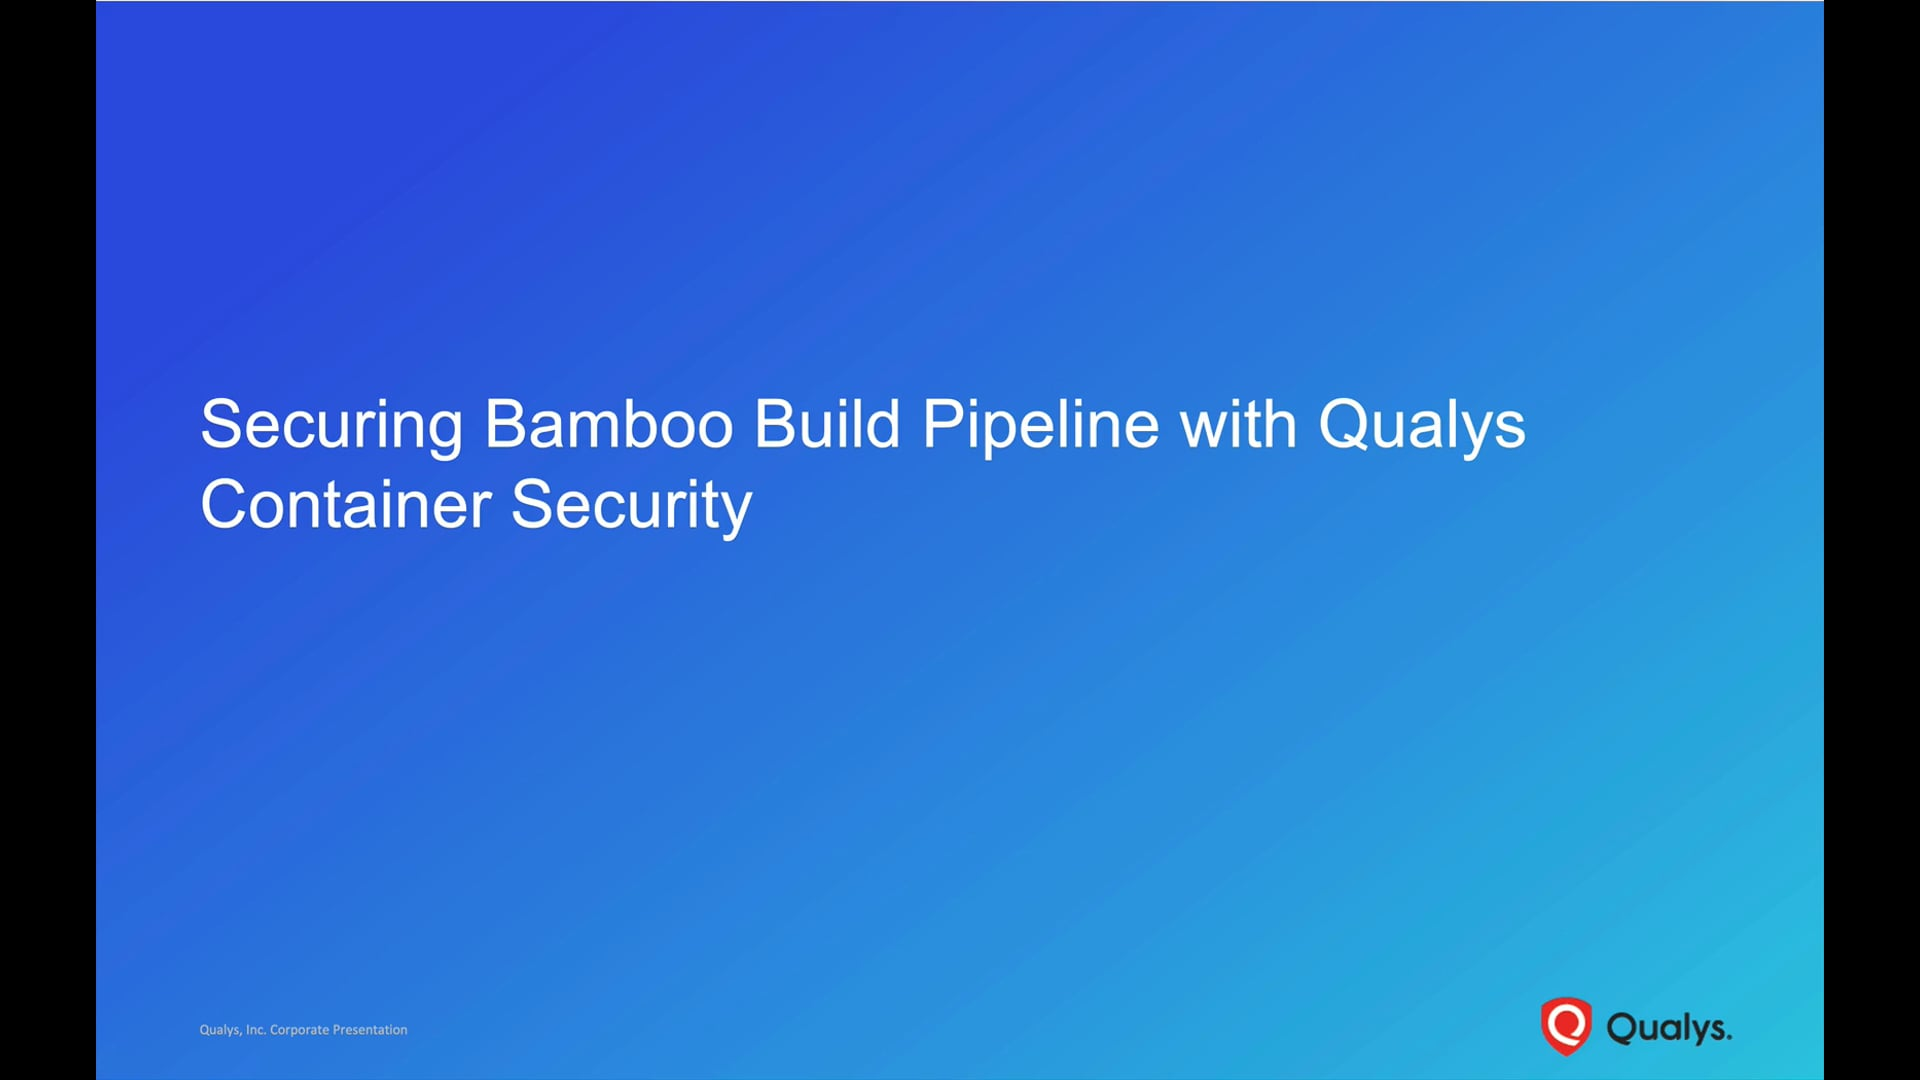 Securing Bamboo Build Pipeline with Qualys Container Security